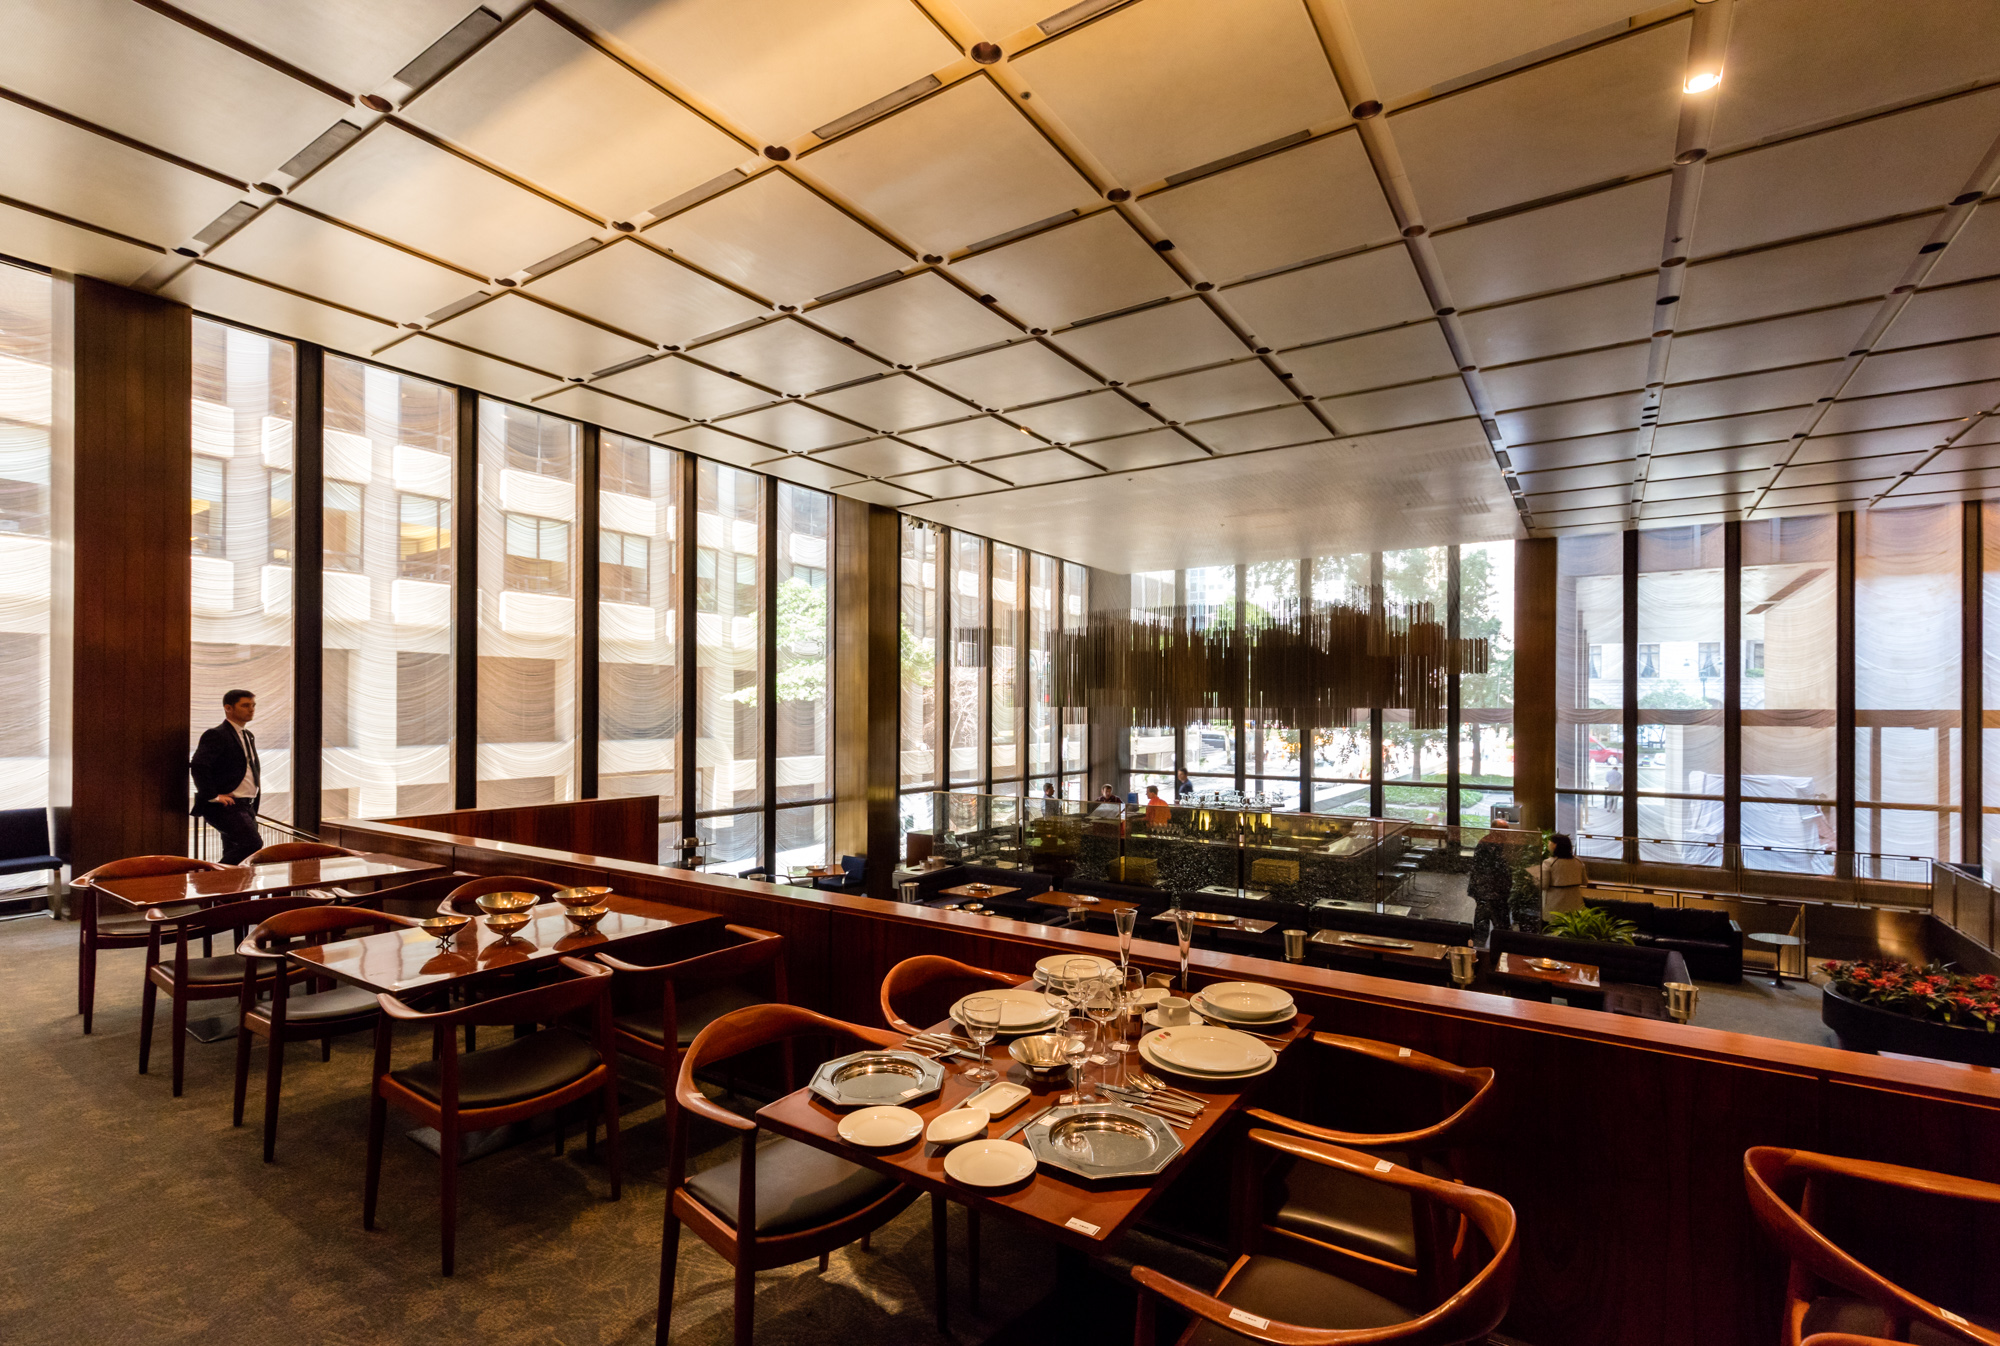 the four seasons restaurant's midcentury modern interiors get